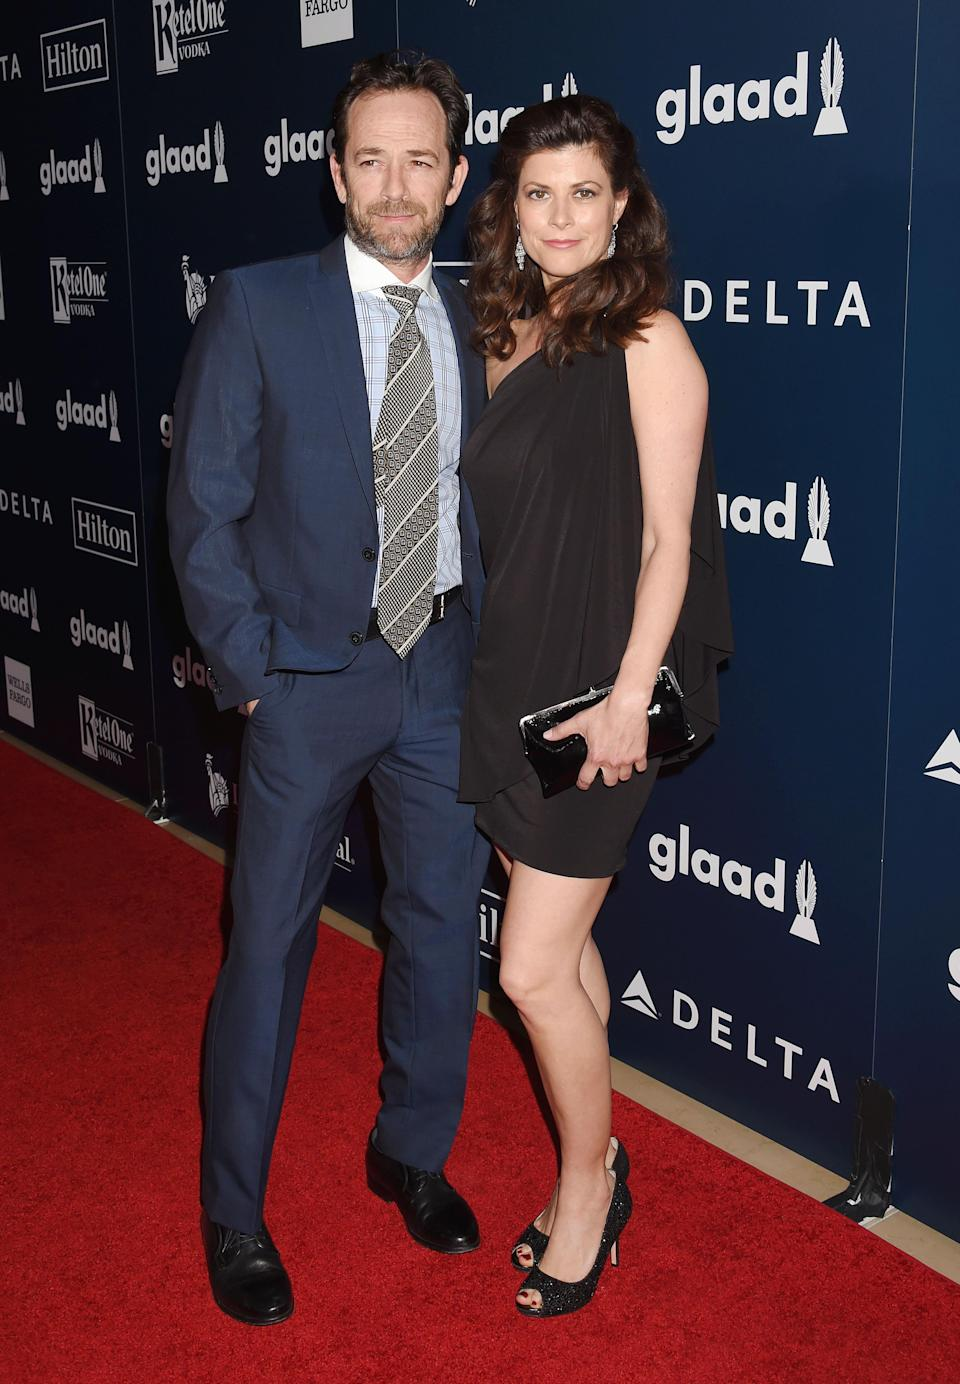 Luke Perry and fiancée, Wendy Madison Bauer in 2017. Image via Getty Images.